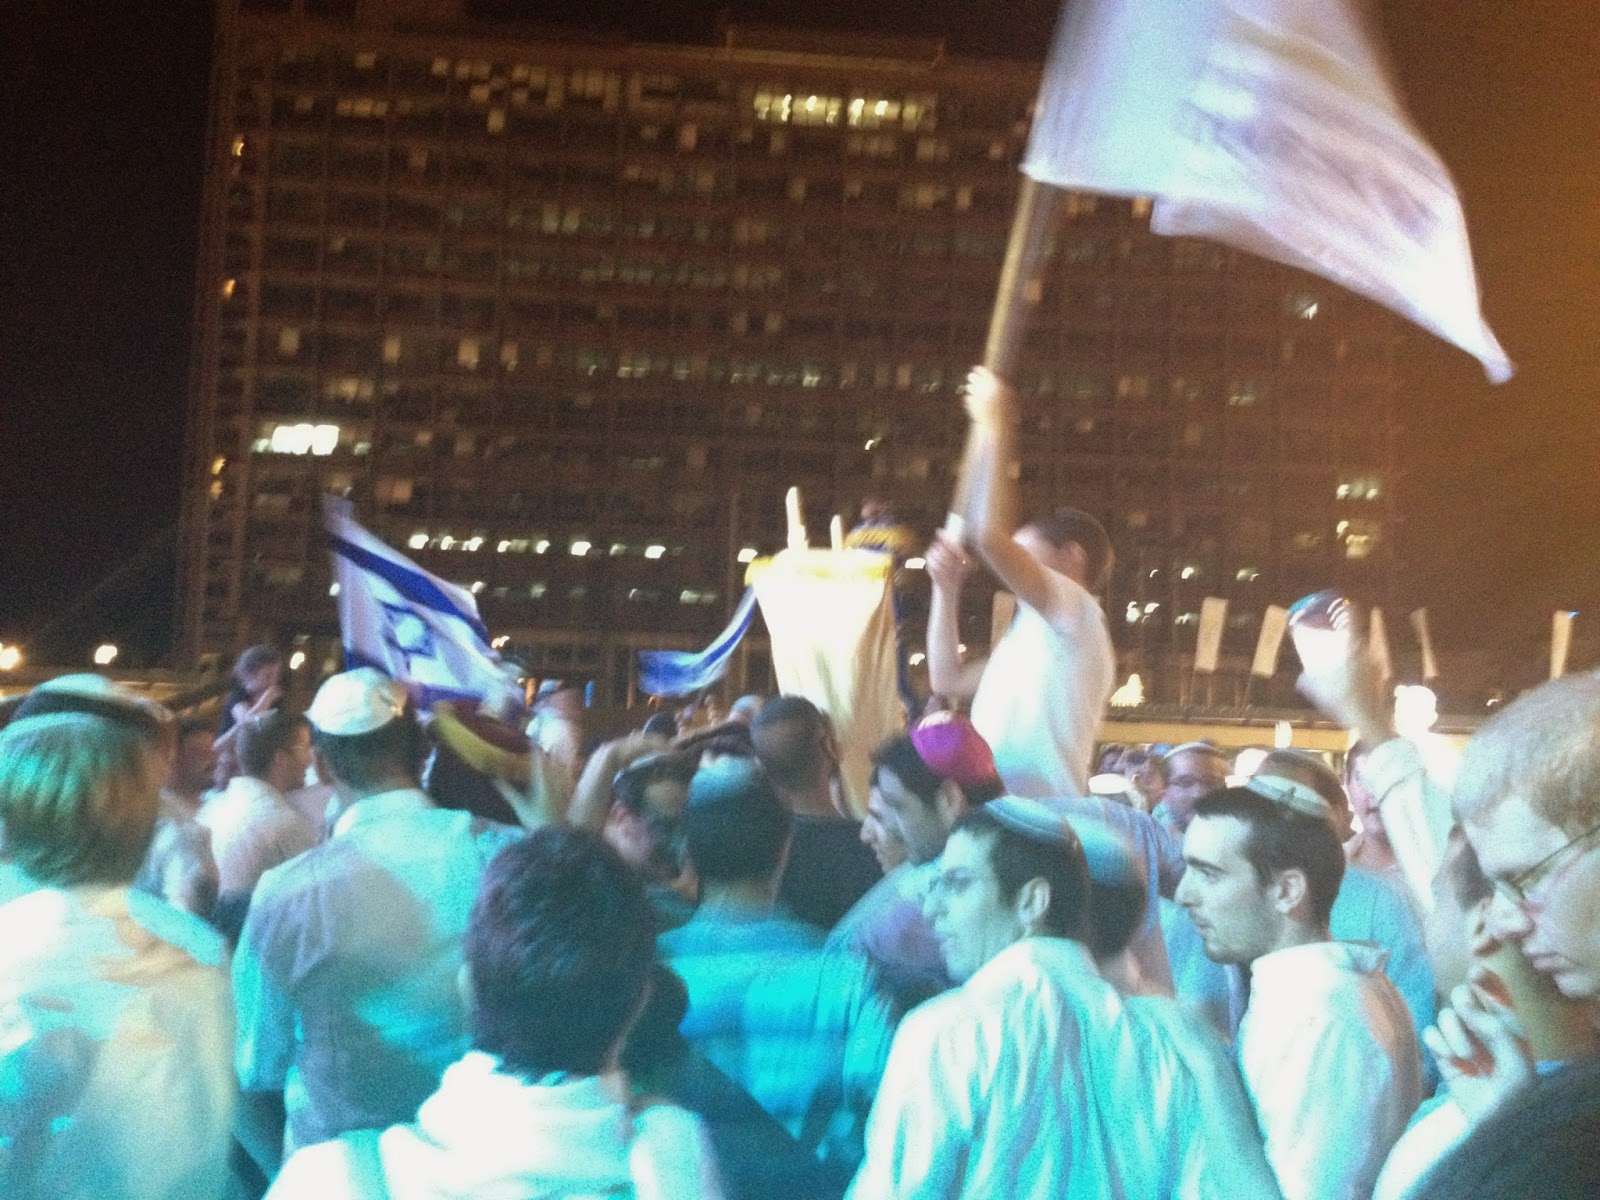 Simchat Torah celebrations in Tel Aviv this evening